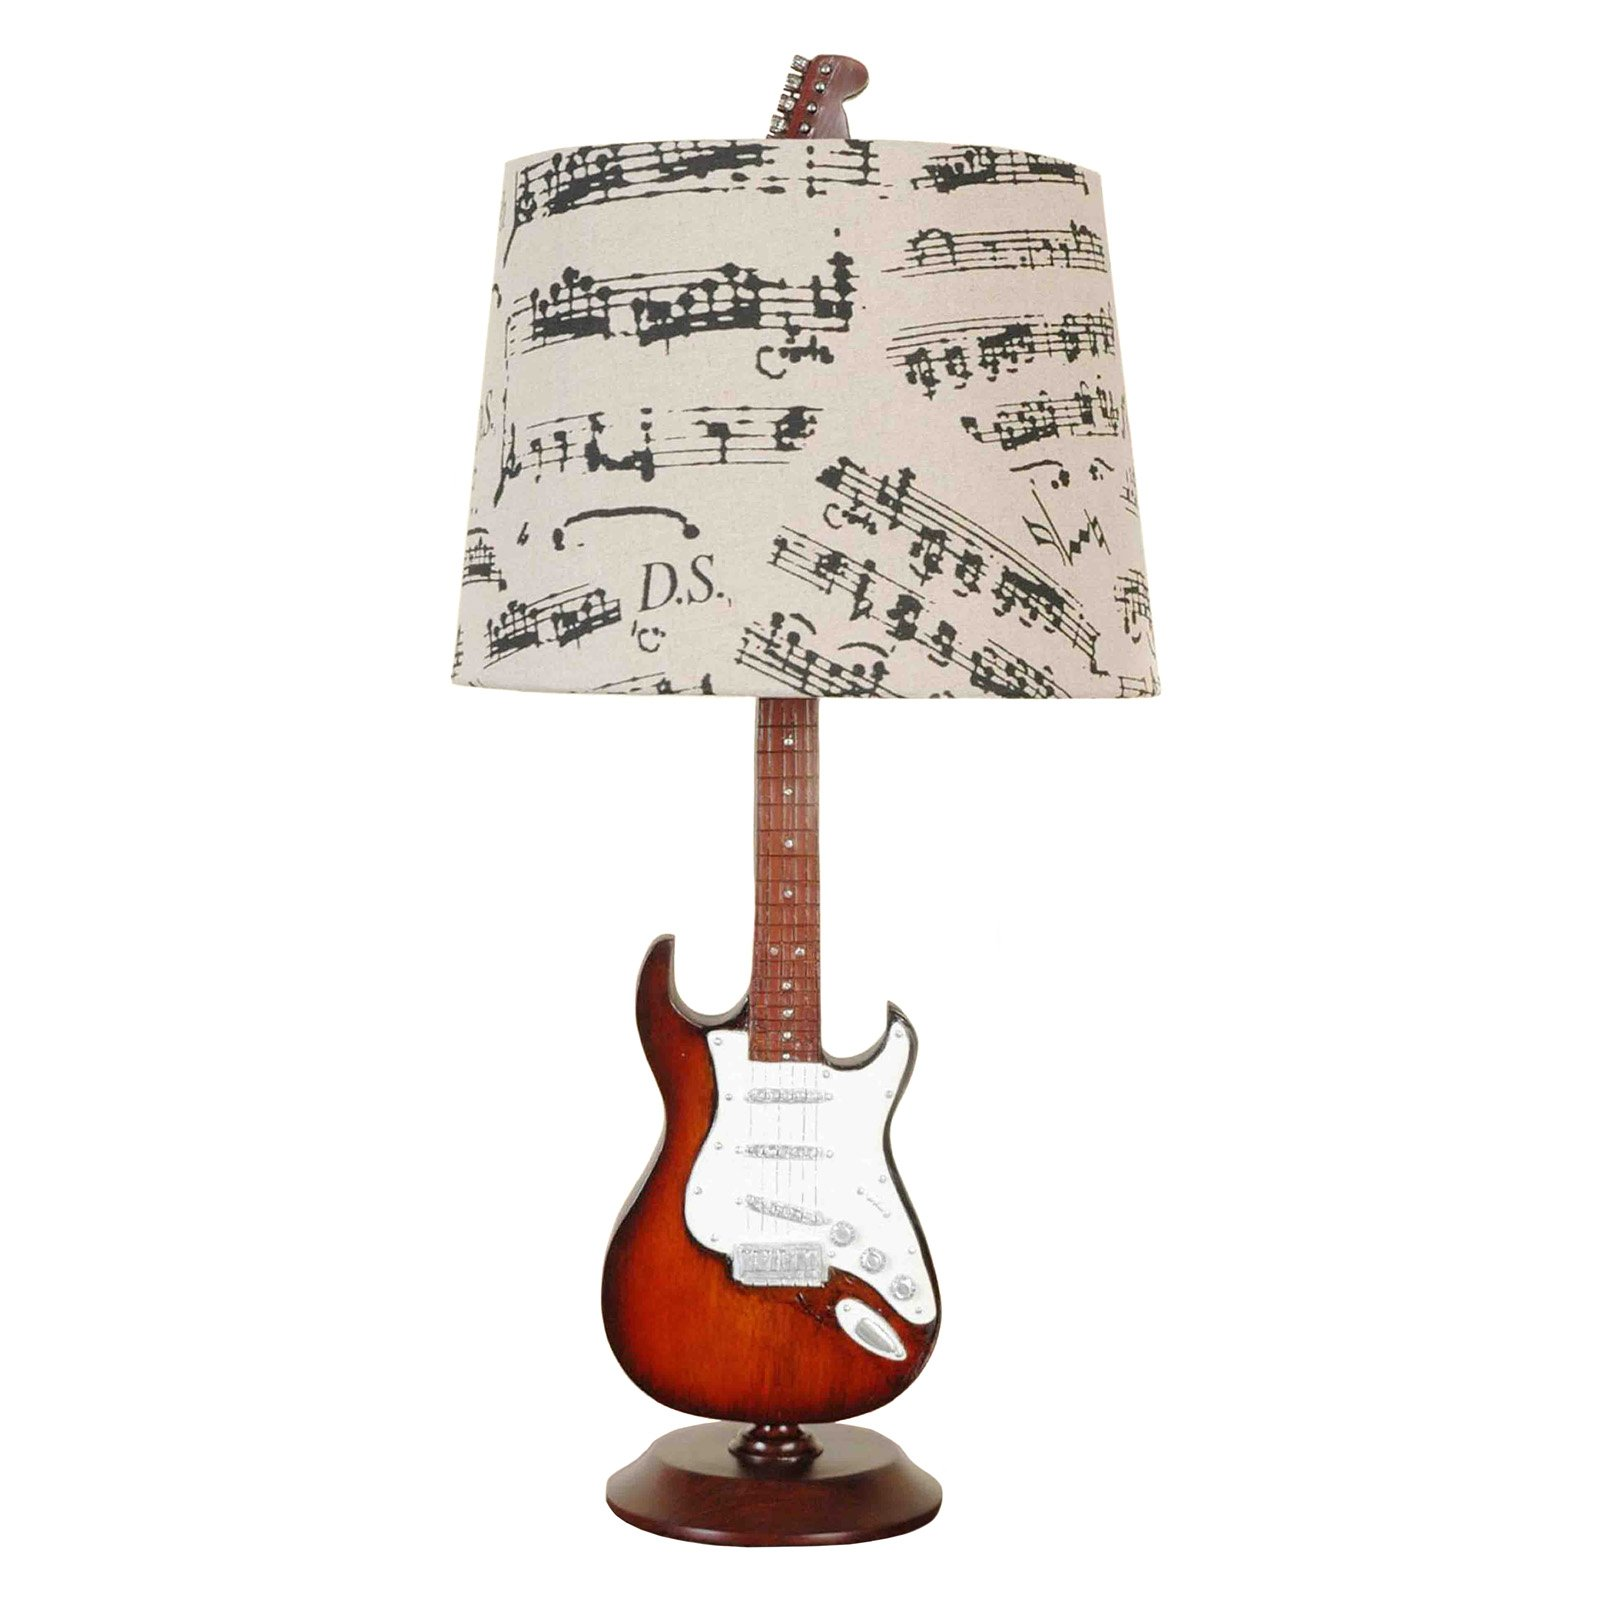 "24.5"" Guitar Desk Lamp/Shade, Base has a guitar design, Shade has music notes, Gift for music lovers, Home, OFfice, Music lessons, Music school, Decor Product Size: 12x24.5"" x12"